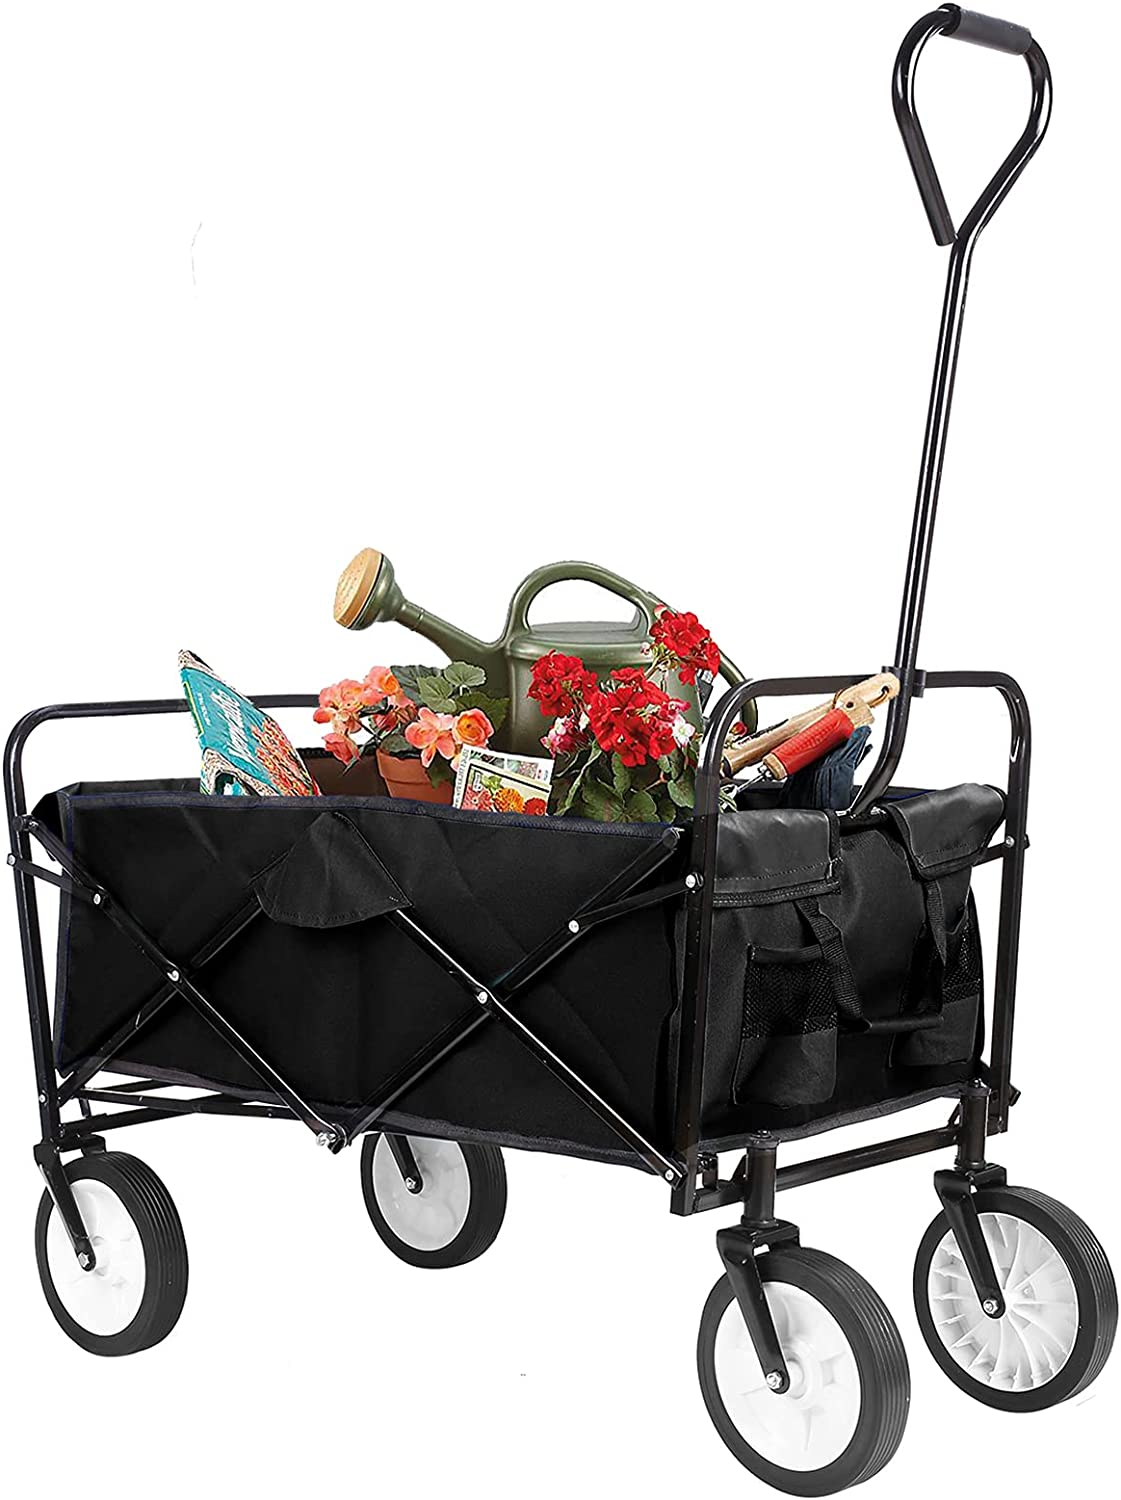 Under blast sales Pirecart Collapsible Folding Wagon Quantity limited Utility Portable Heavy-Duty